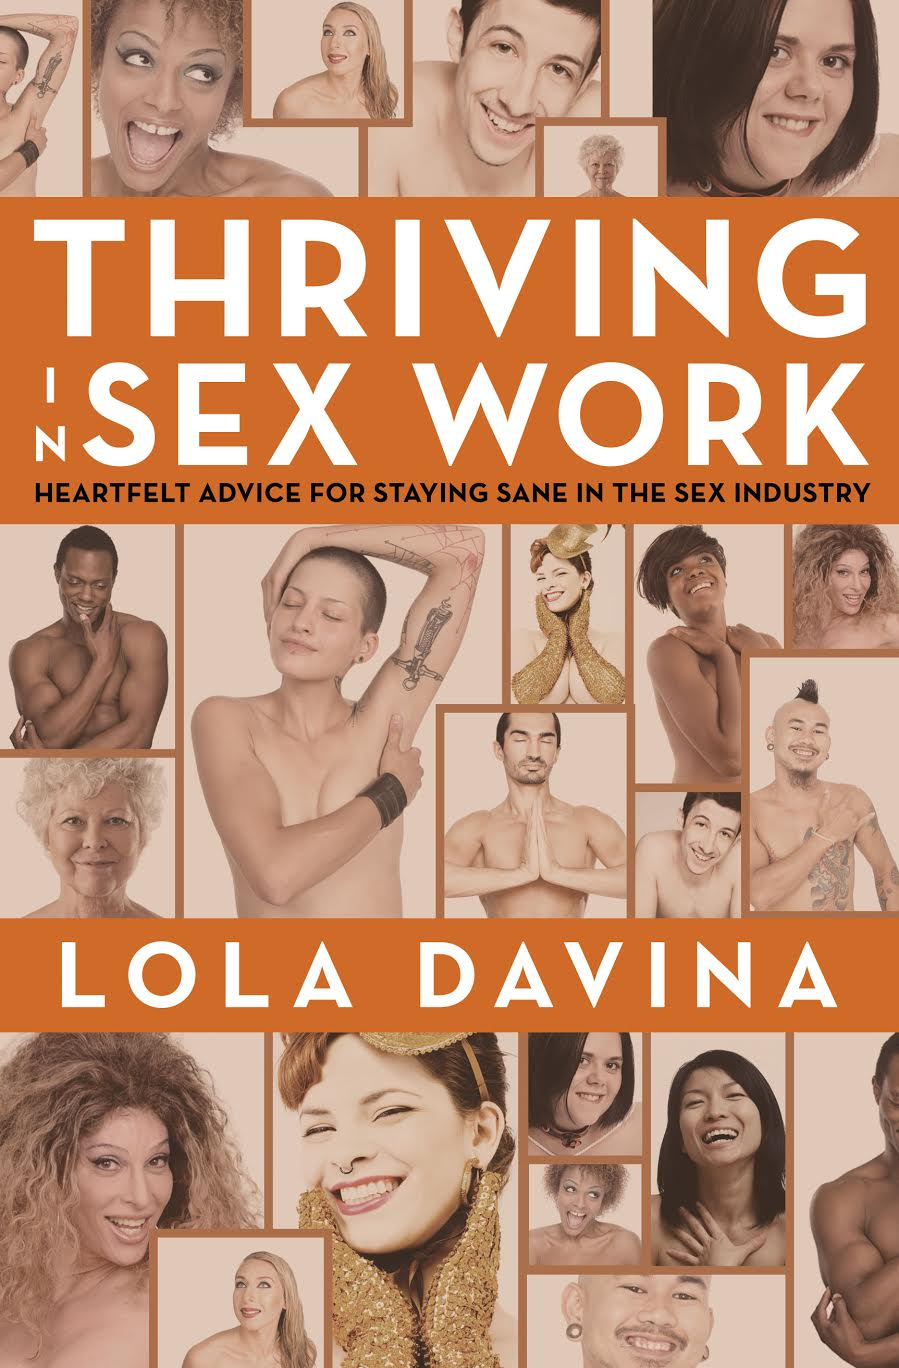 Front and back covers of  Thriving in Sex Work: Heartfelt Advice for Staying Sane in the Sex Industry ; Design by Albert Ochosa.